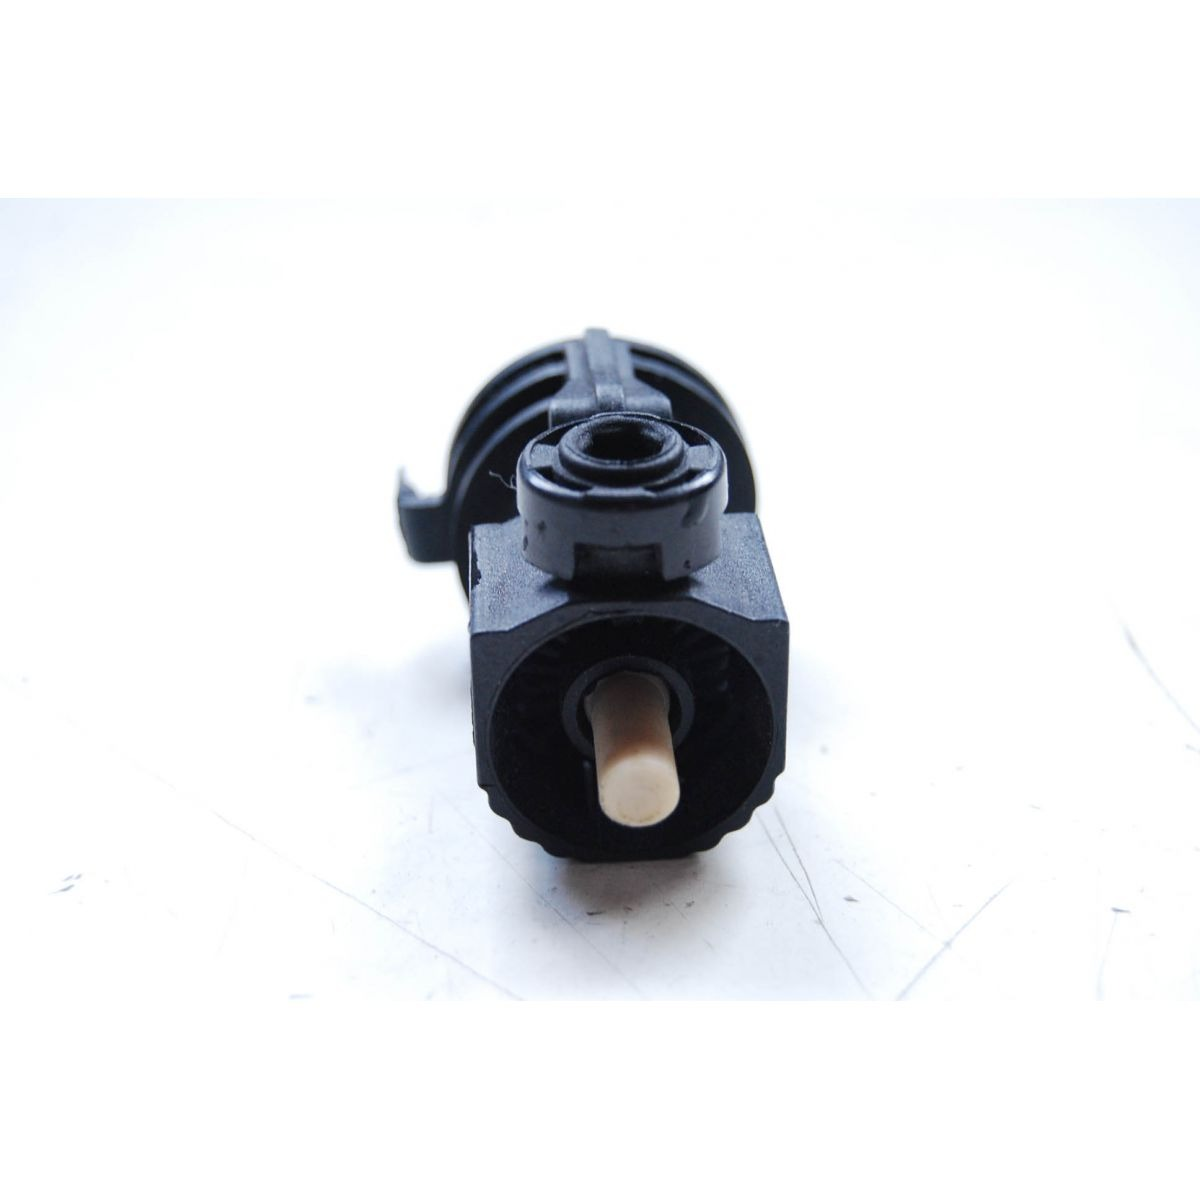 Regulador Central Farol Clio 03 A 12 Logan Sandero